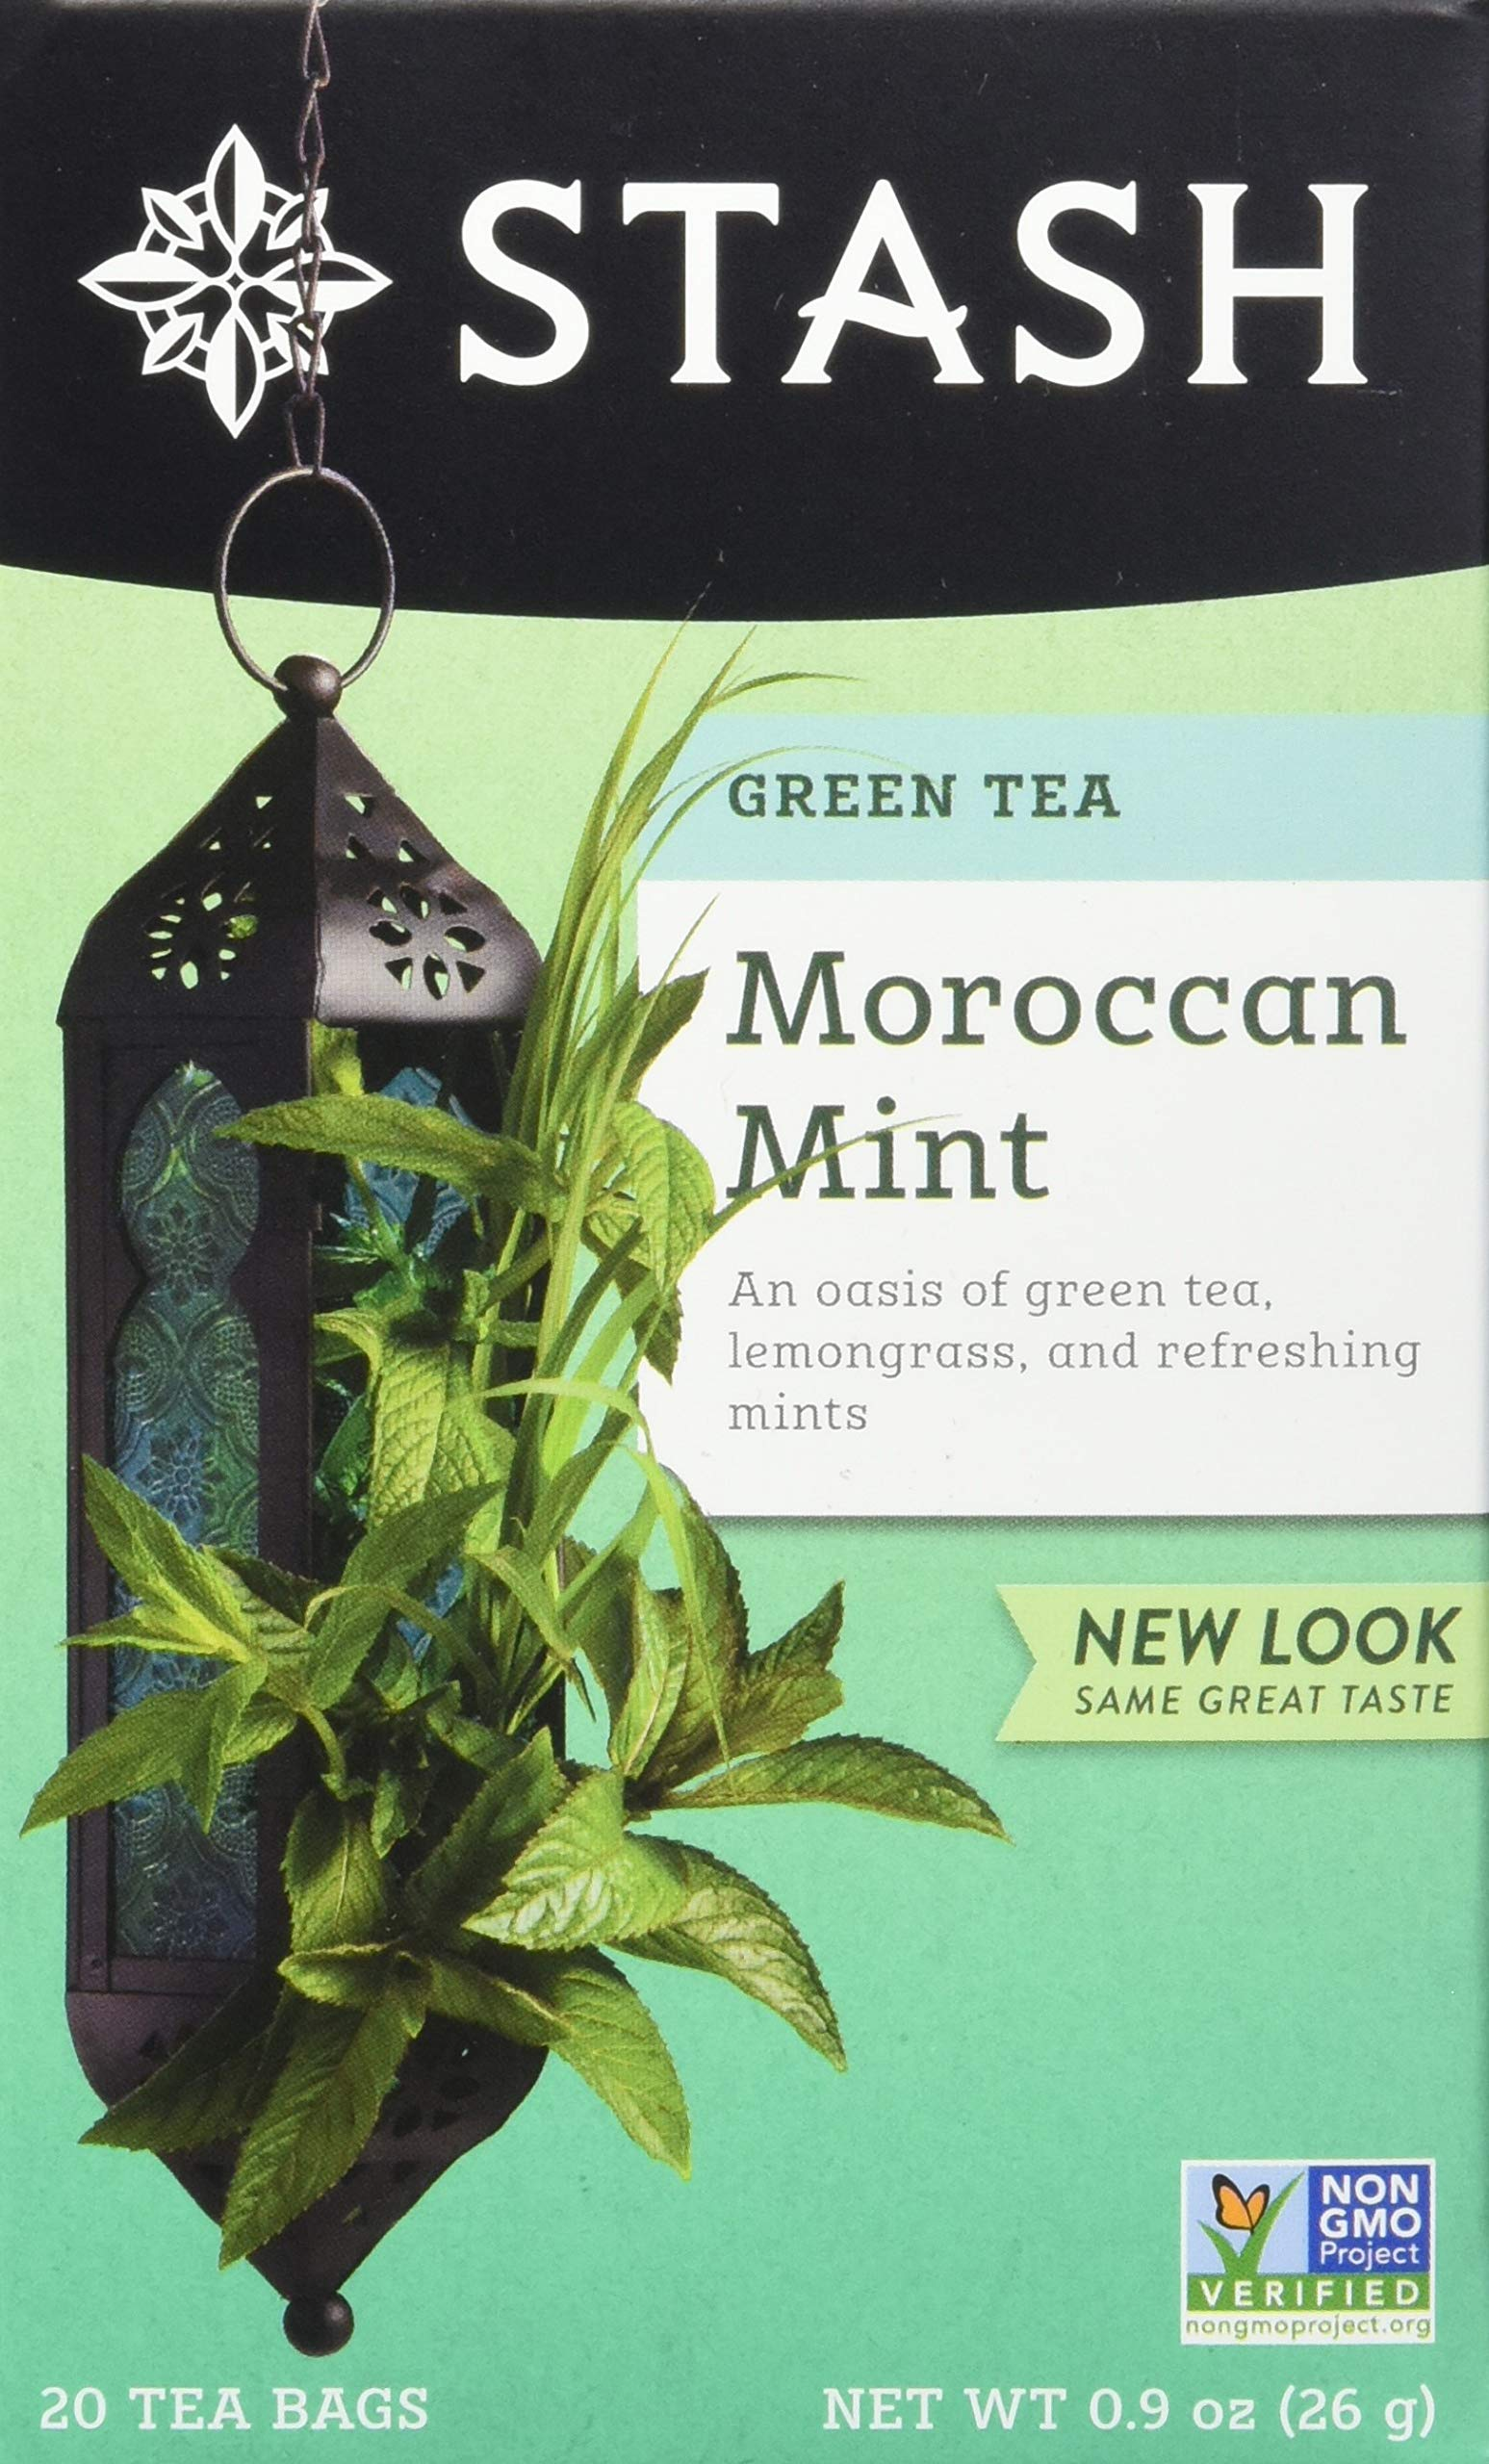 Stash Tea Moroccan Mint Green Tea 20 Count Box of Tea Bags in Foil (Pack of 6)